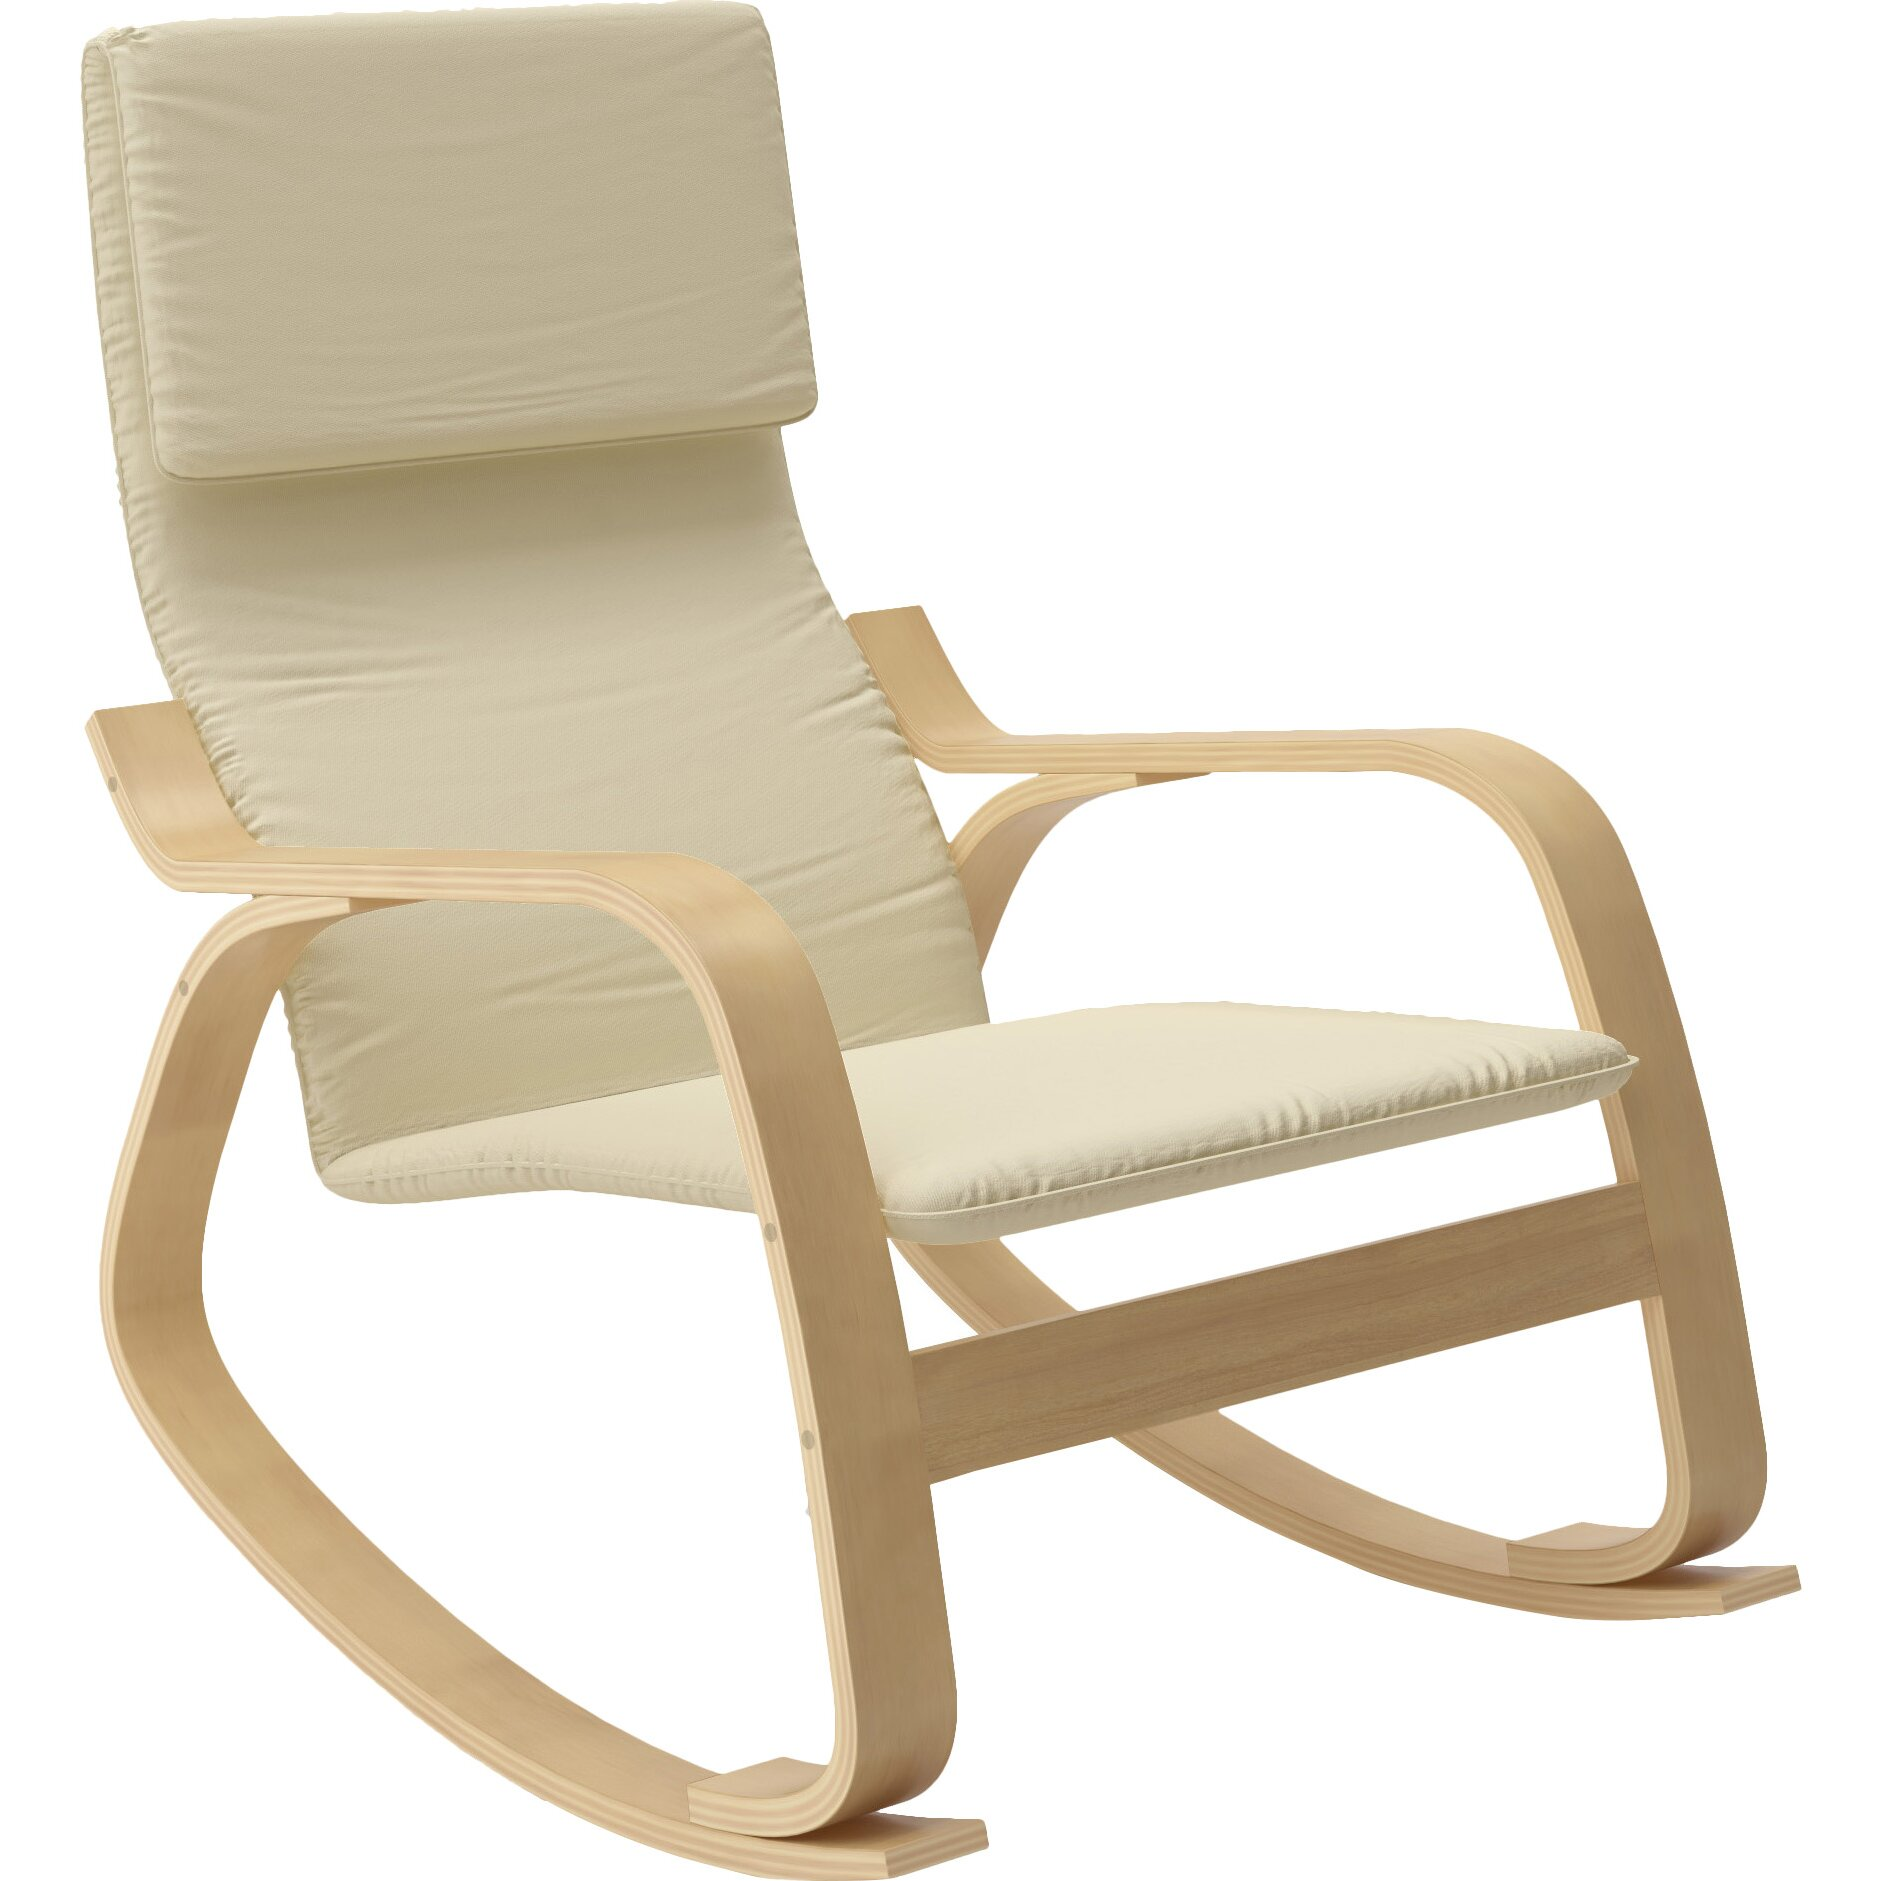 Dcor design aquios rocking chair reviews wayfair for Rocking chair